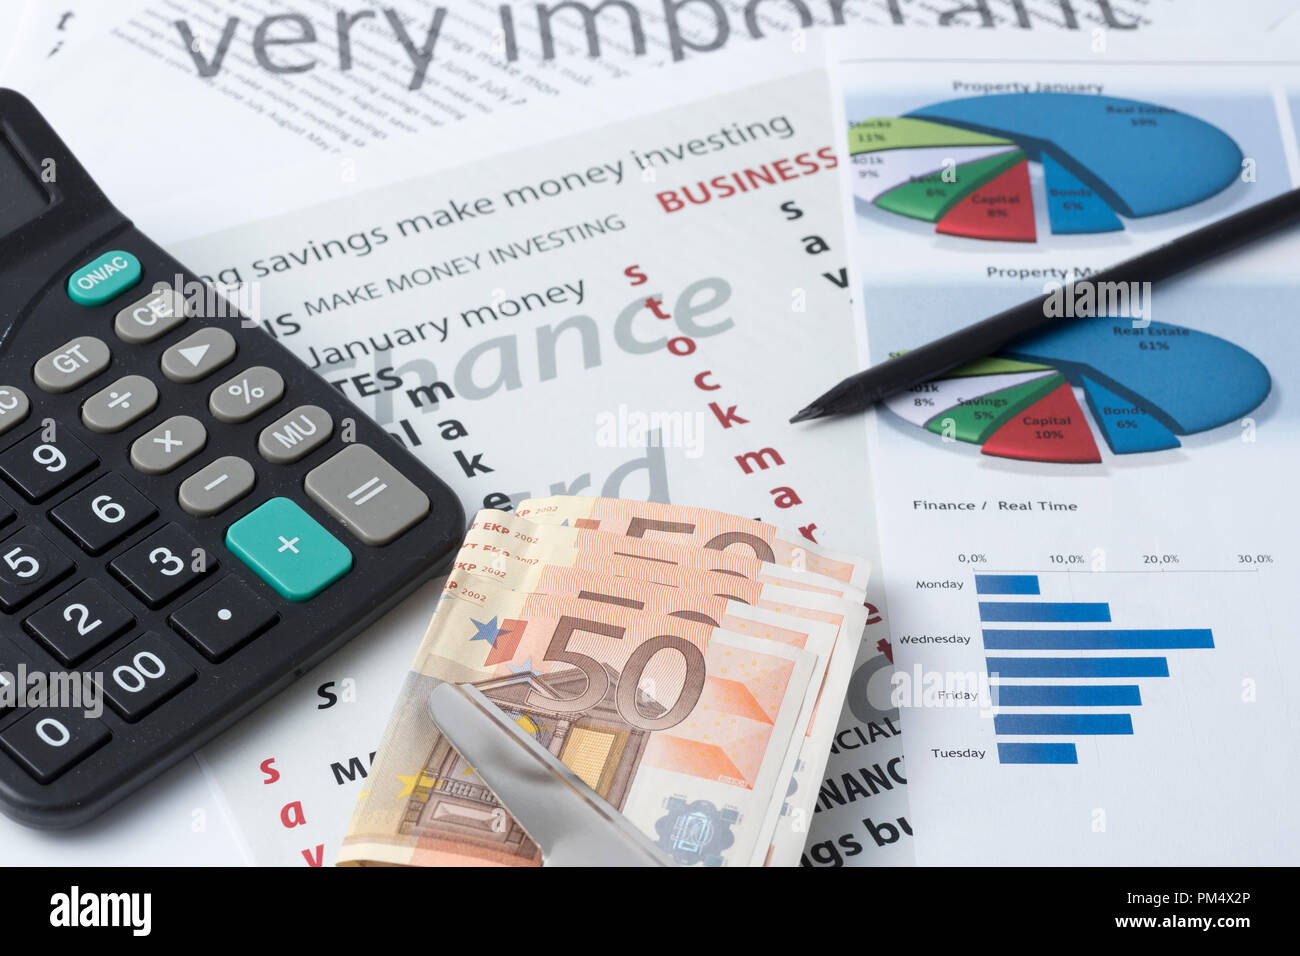 seek a best stock market investment - Stock Image